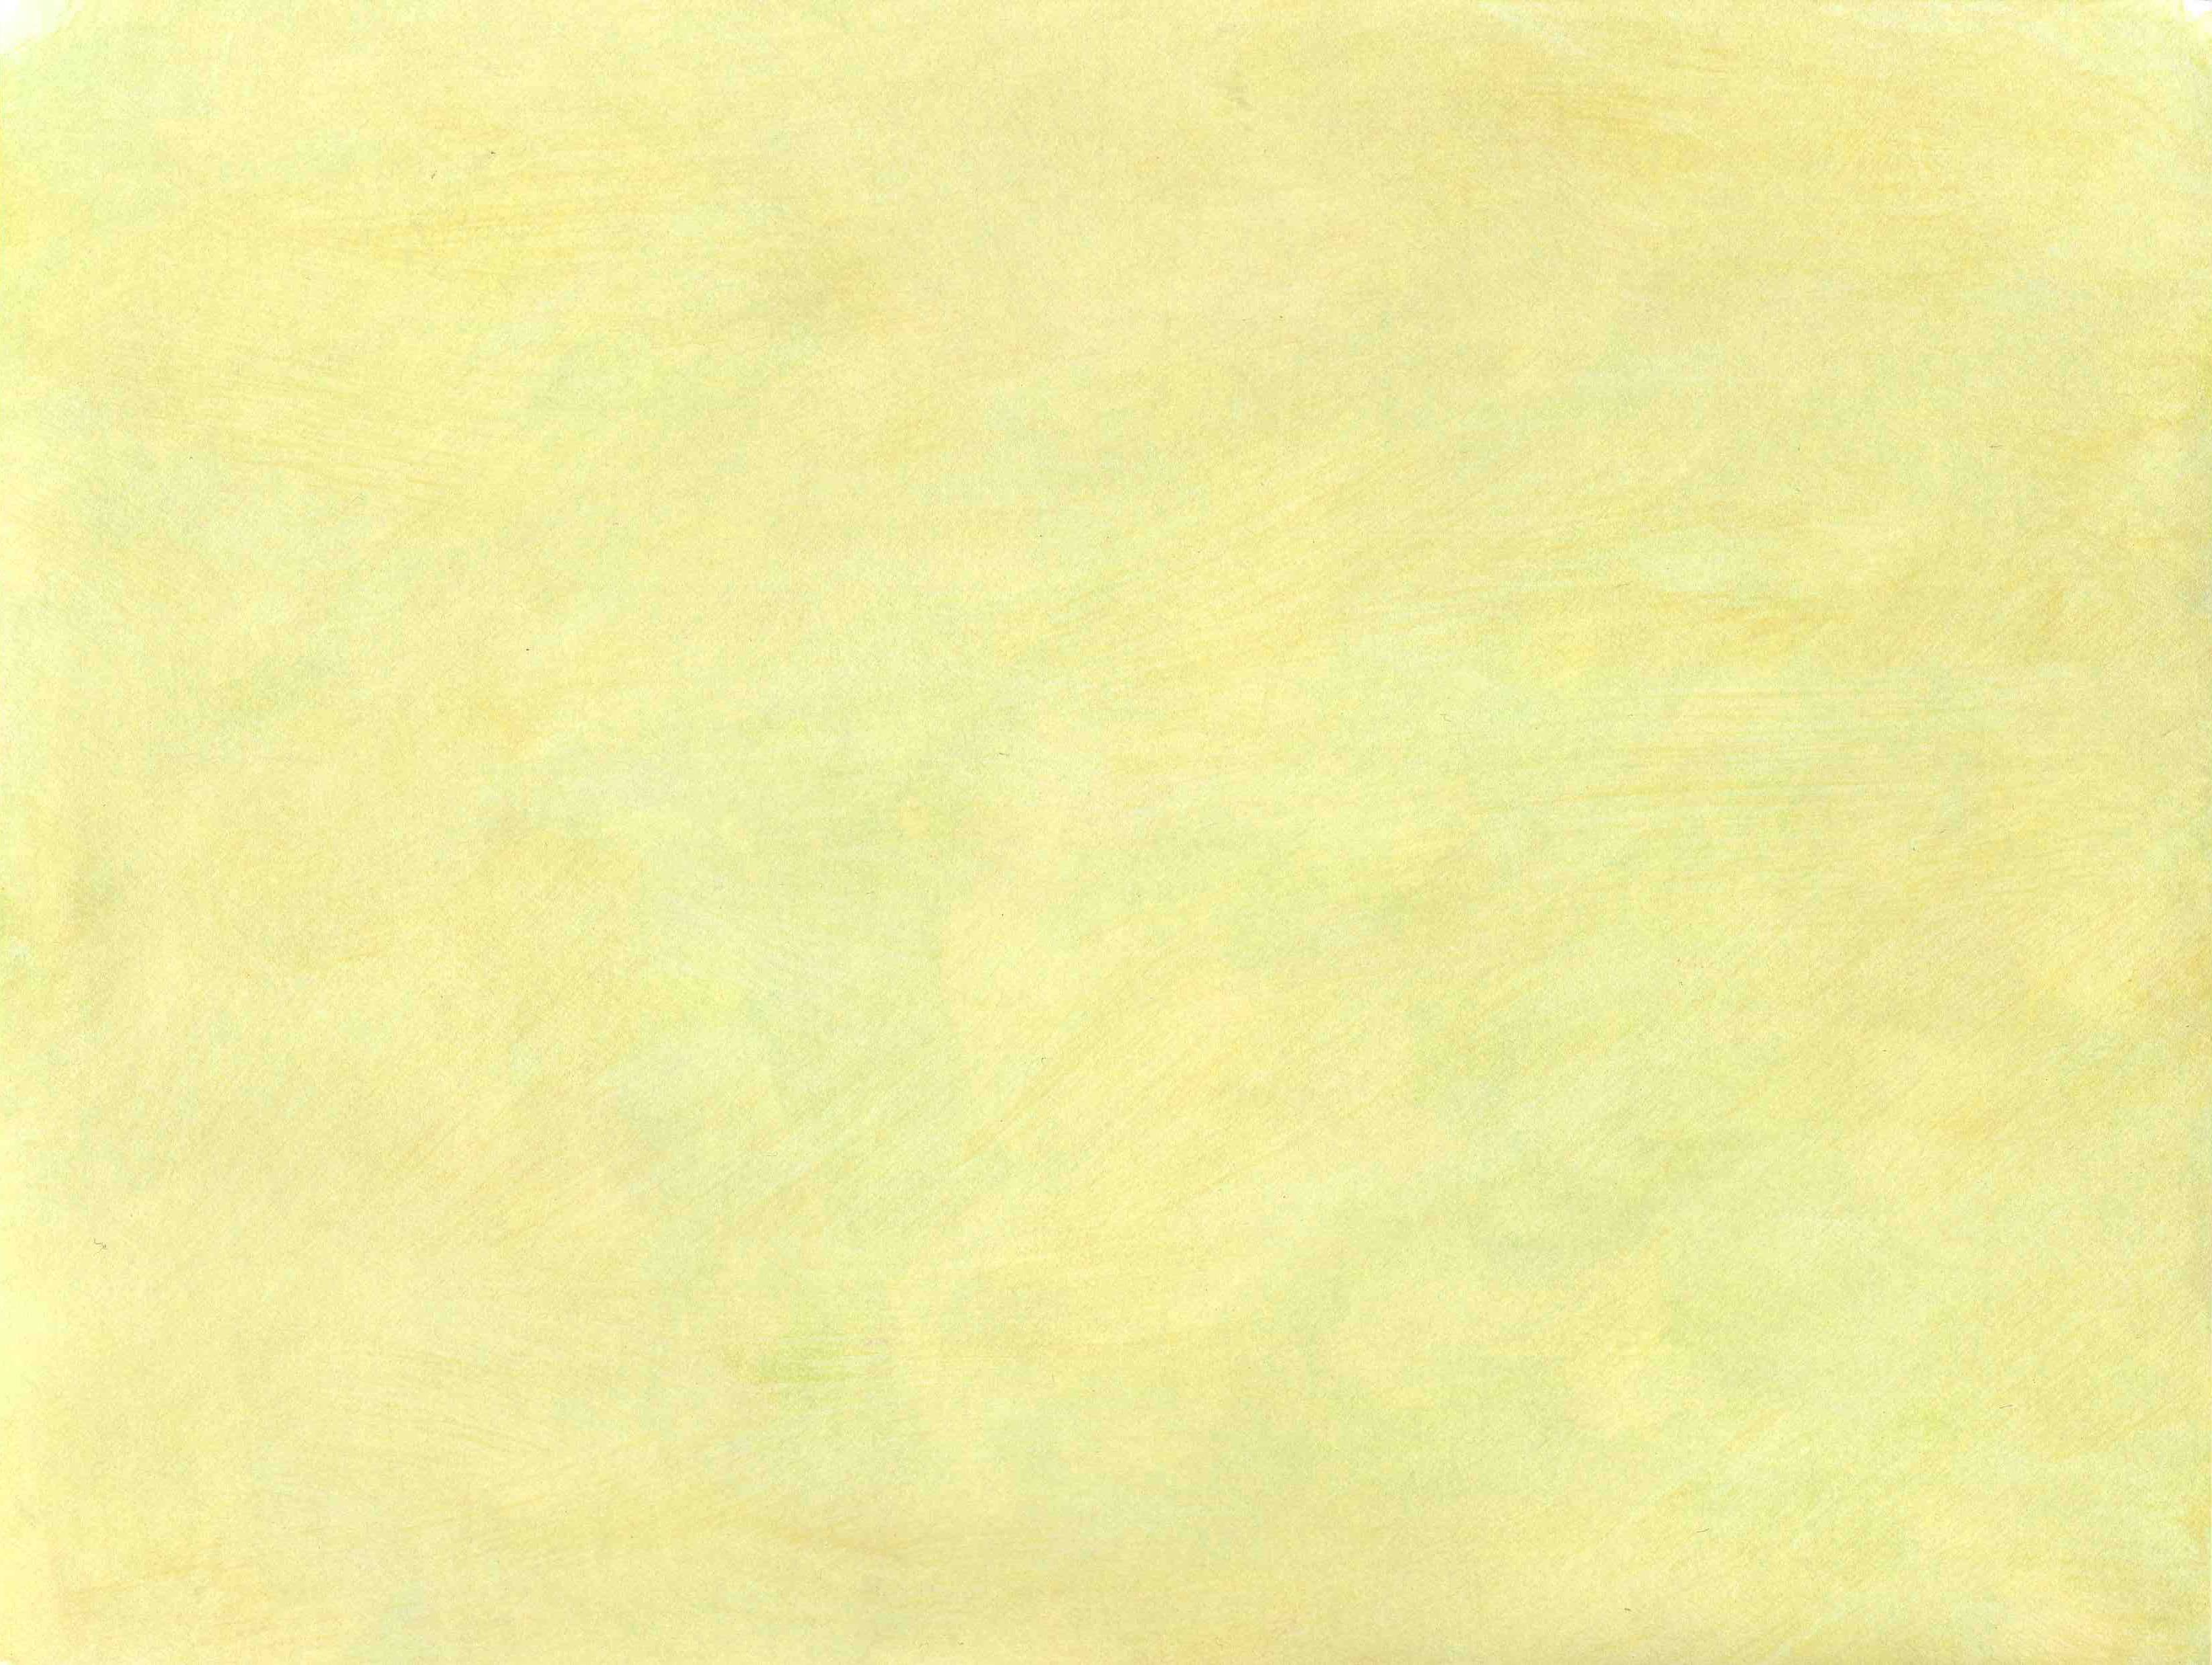 Wallpapers For Pale Yellow Background Images